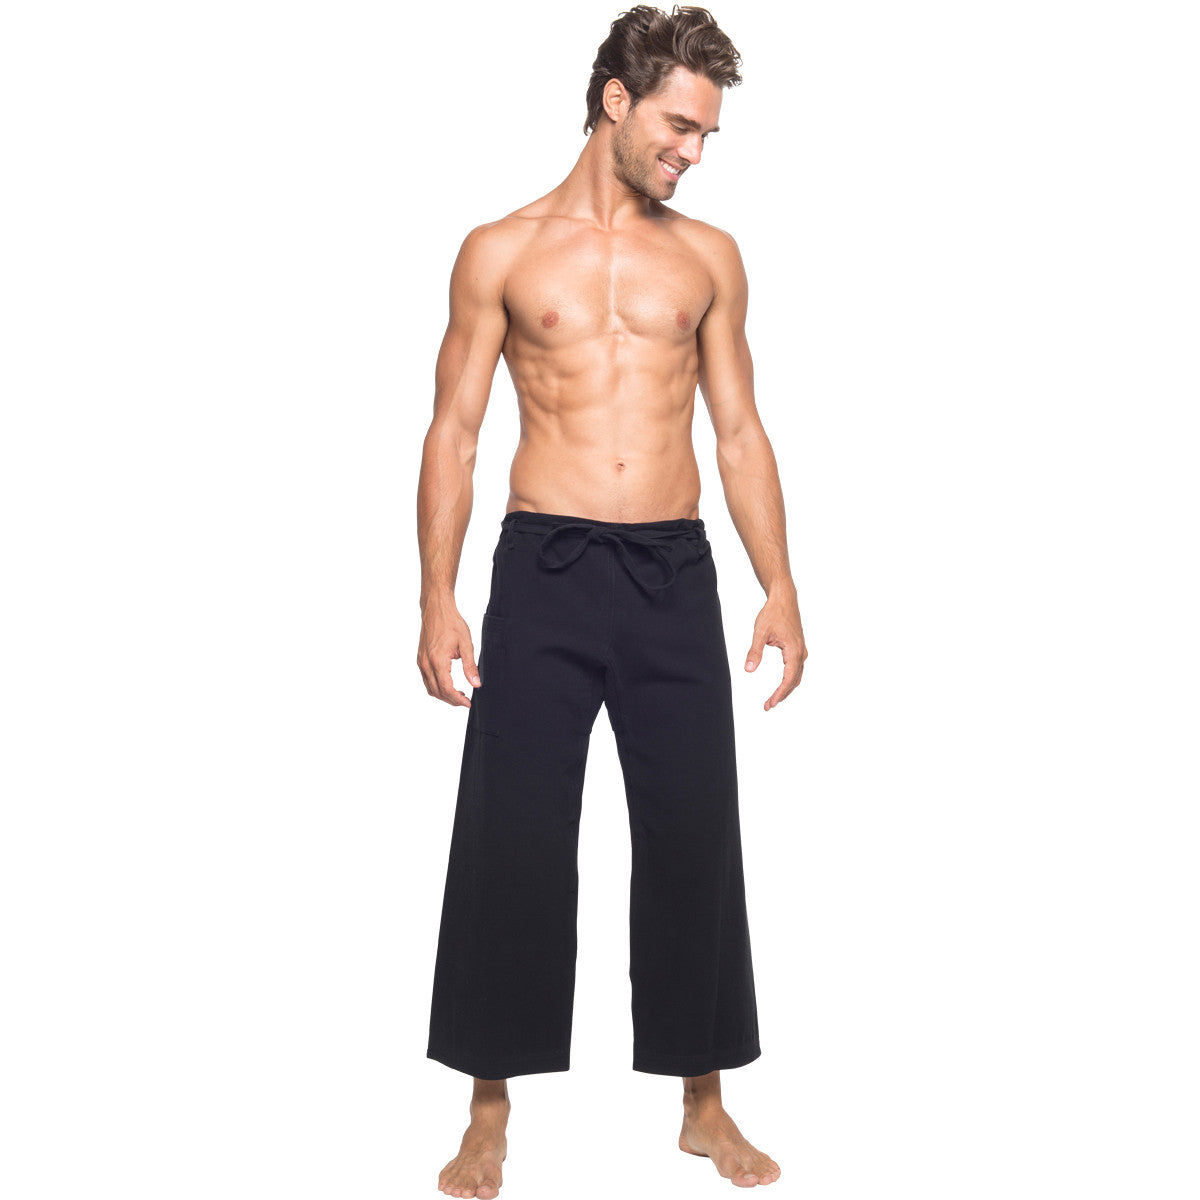 Mens Black Yoga Pants jcHHLYEe